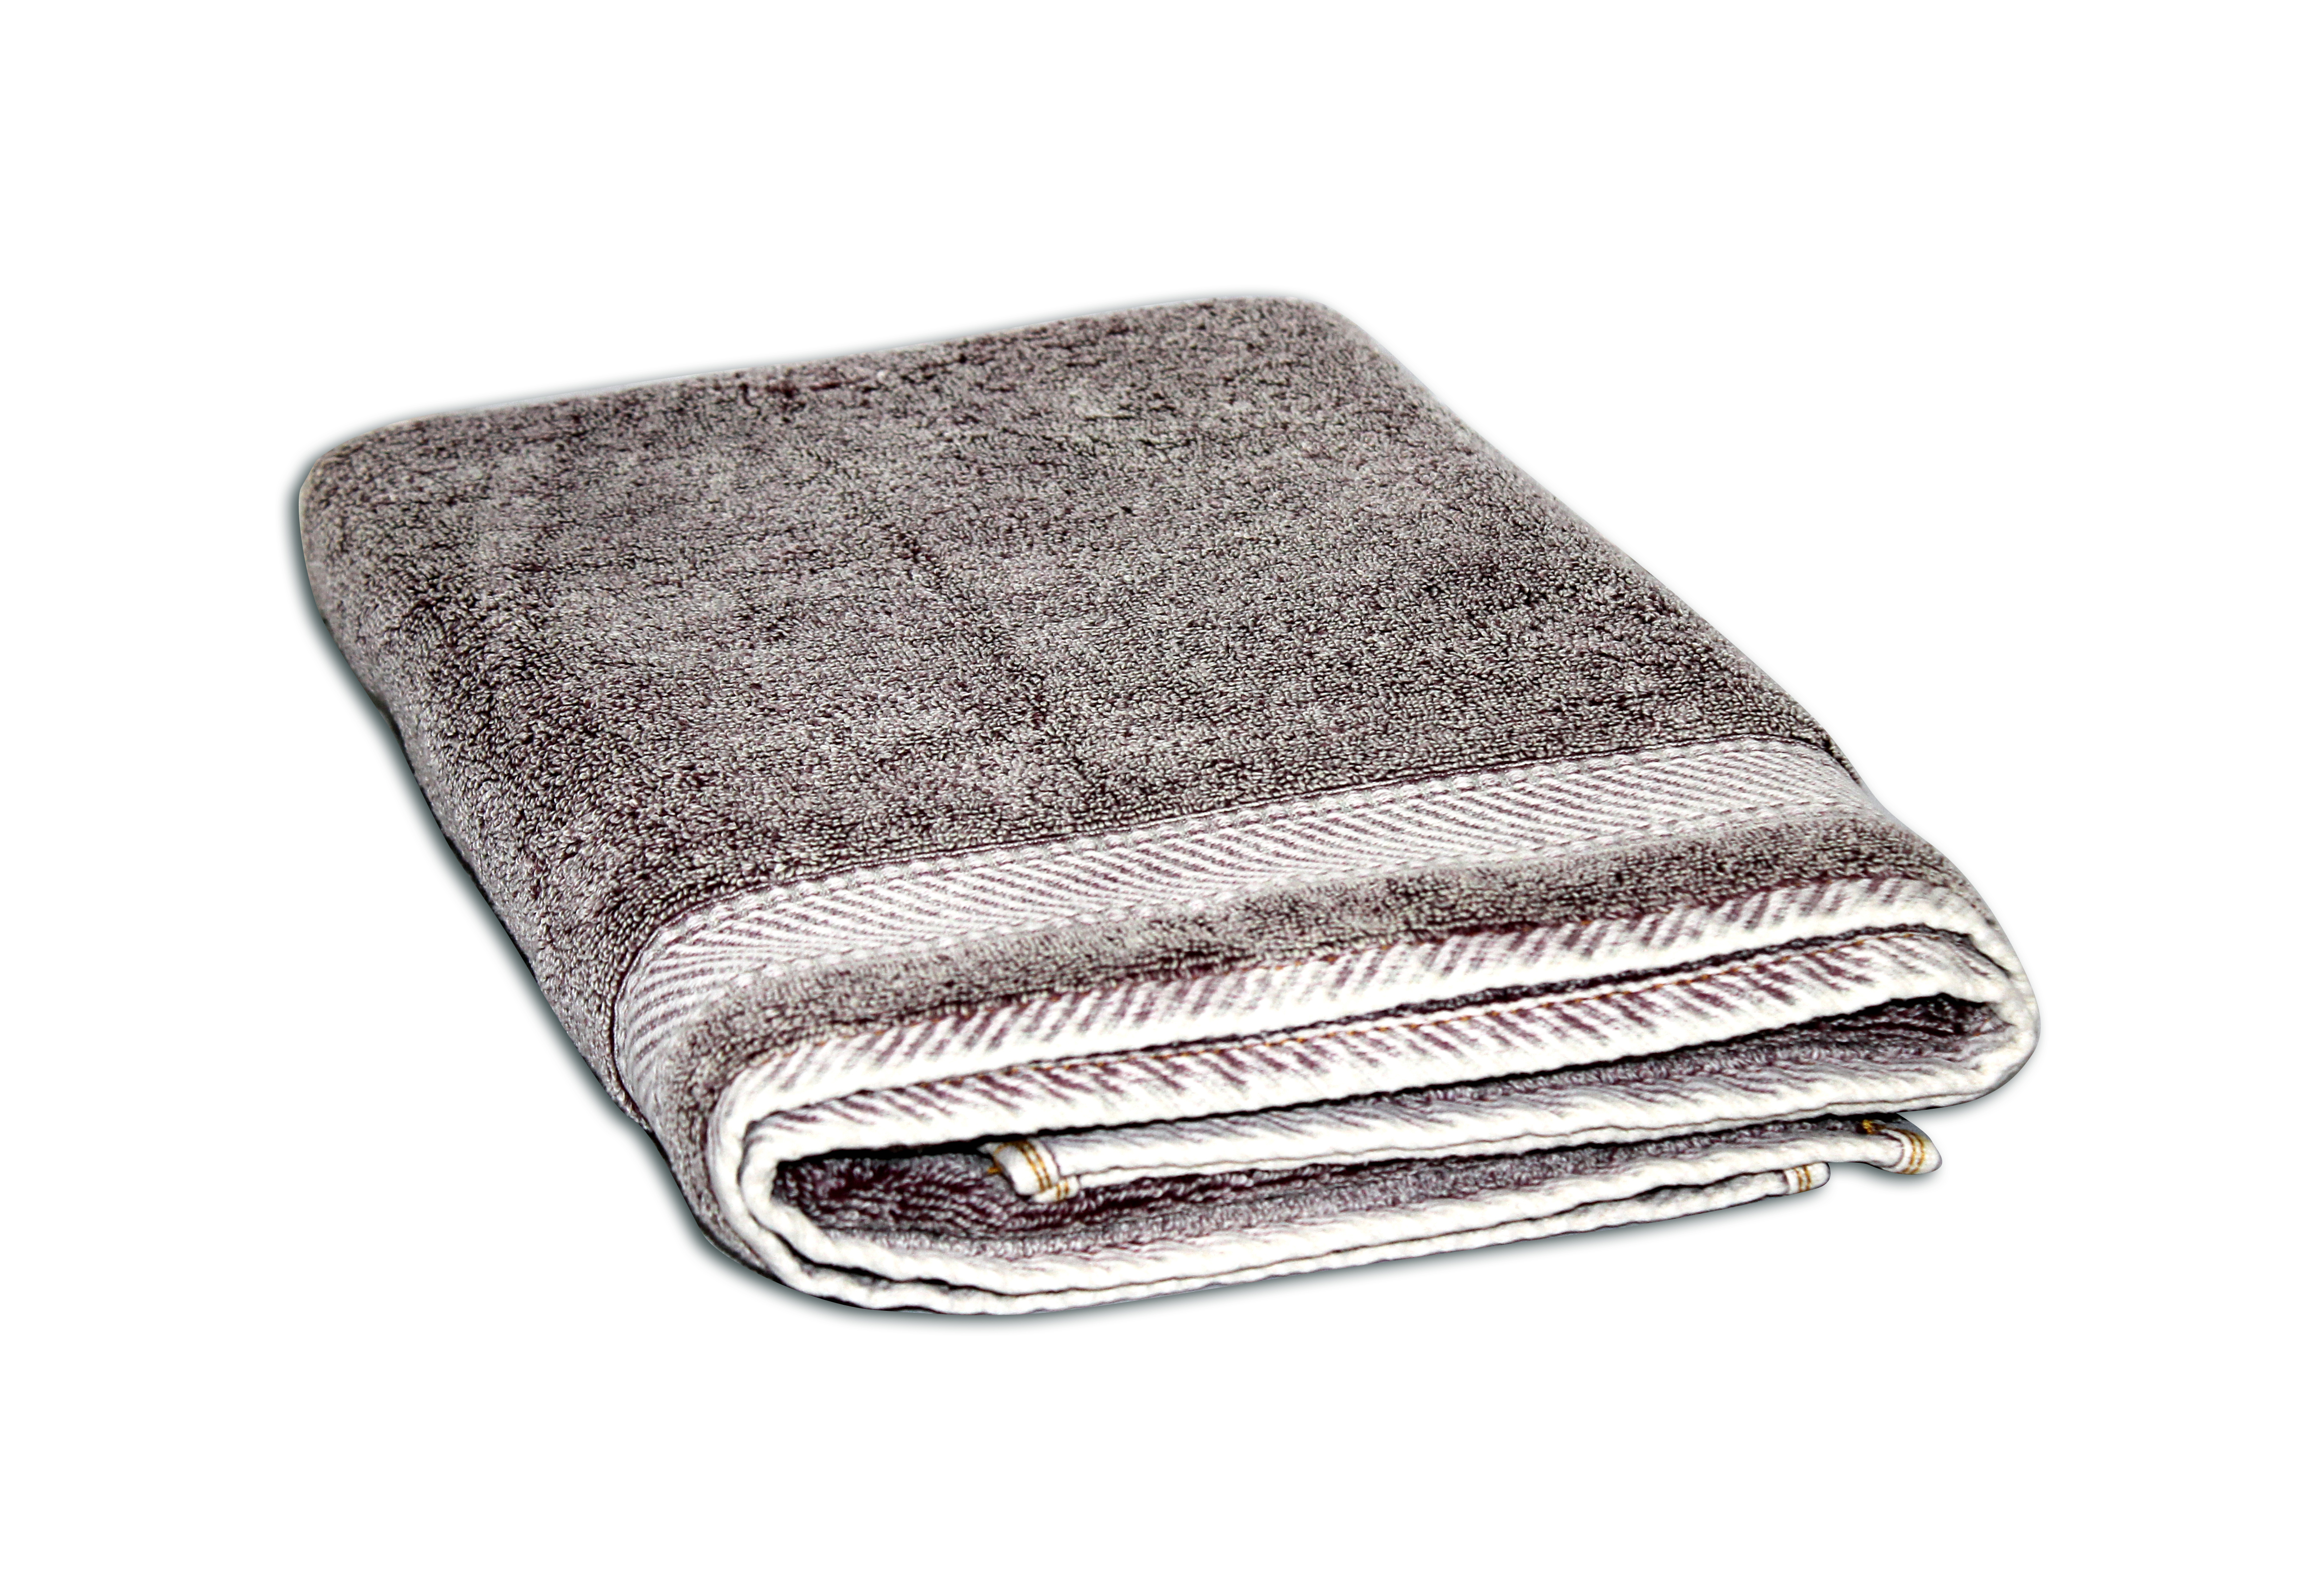 Spaces Youthopia Denim Maroon Bath Cotton Bath Towels in Maroon Colour by Spaces